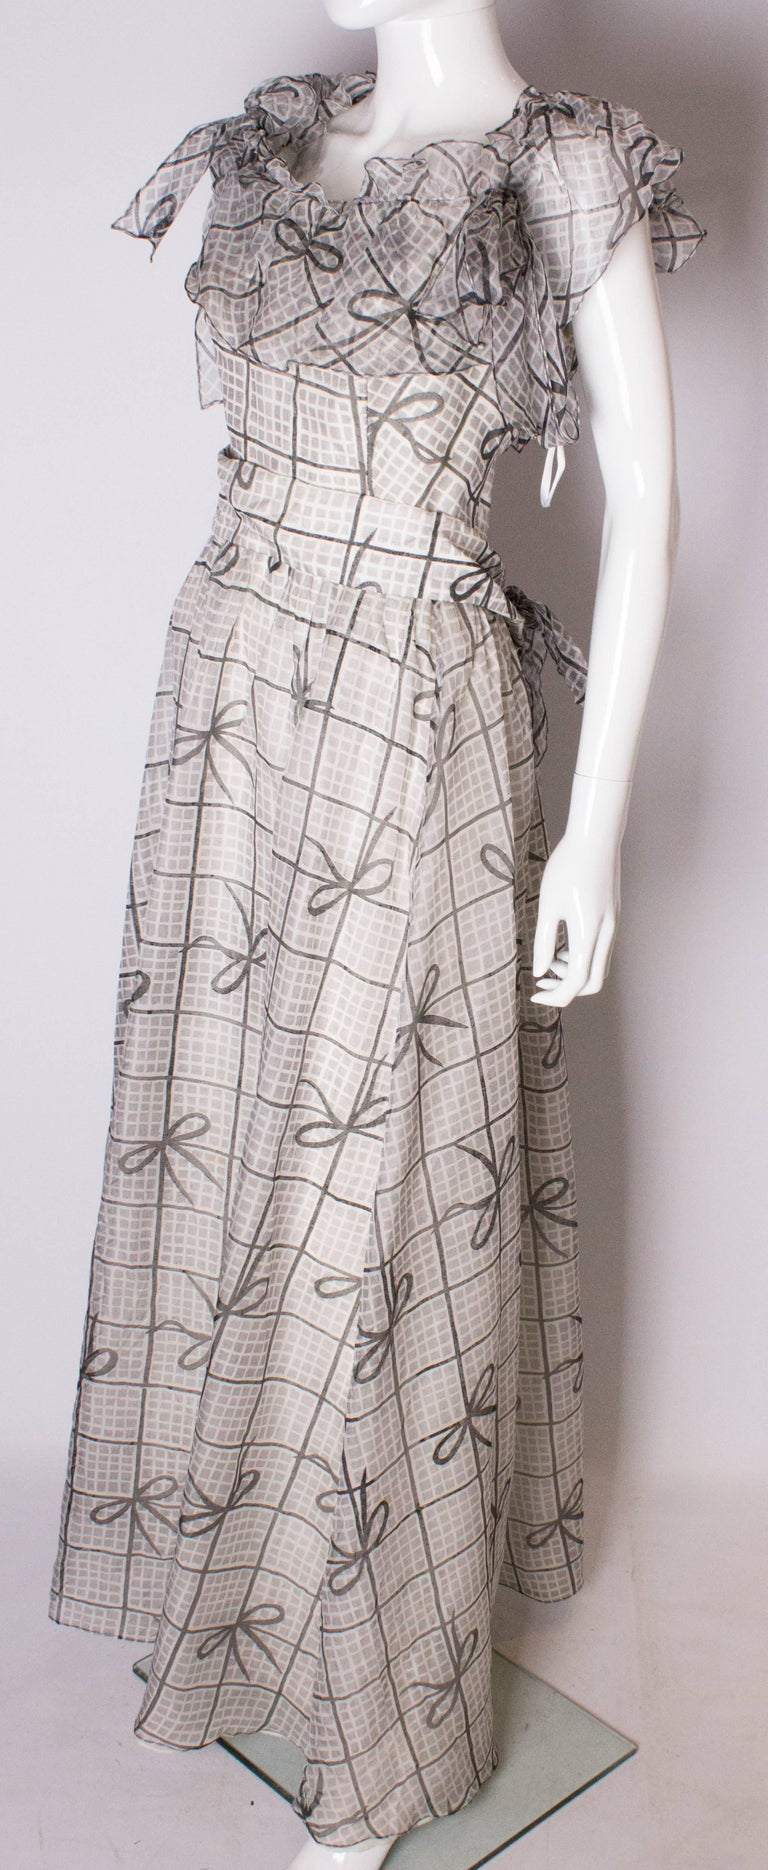 A Vintage 1970s grey printed silk evening gown by Gina Fratini In Good Condition For Sale In London, GB